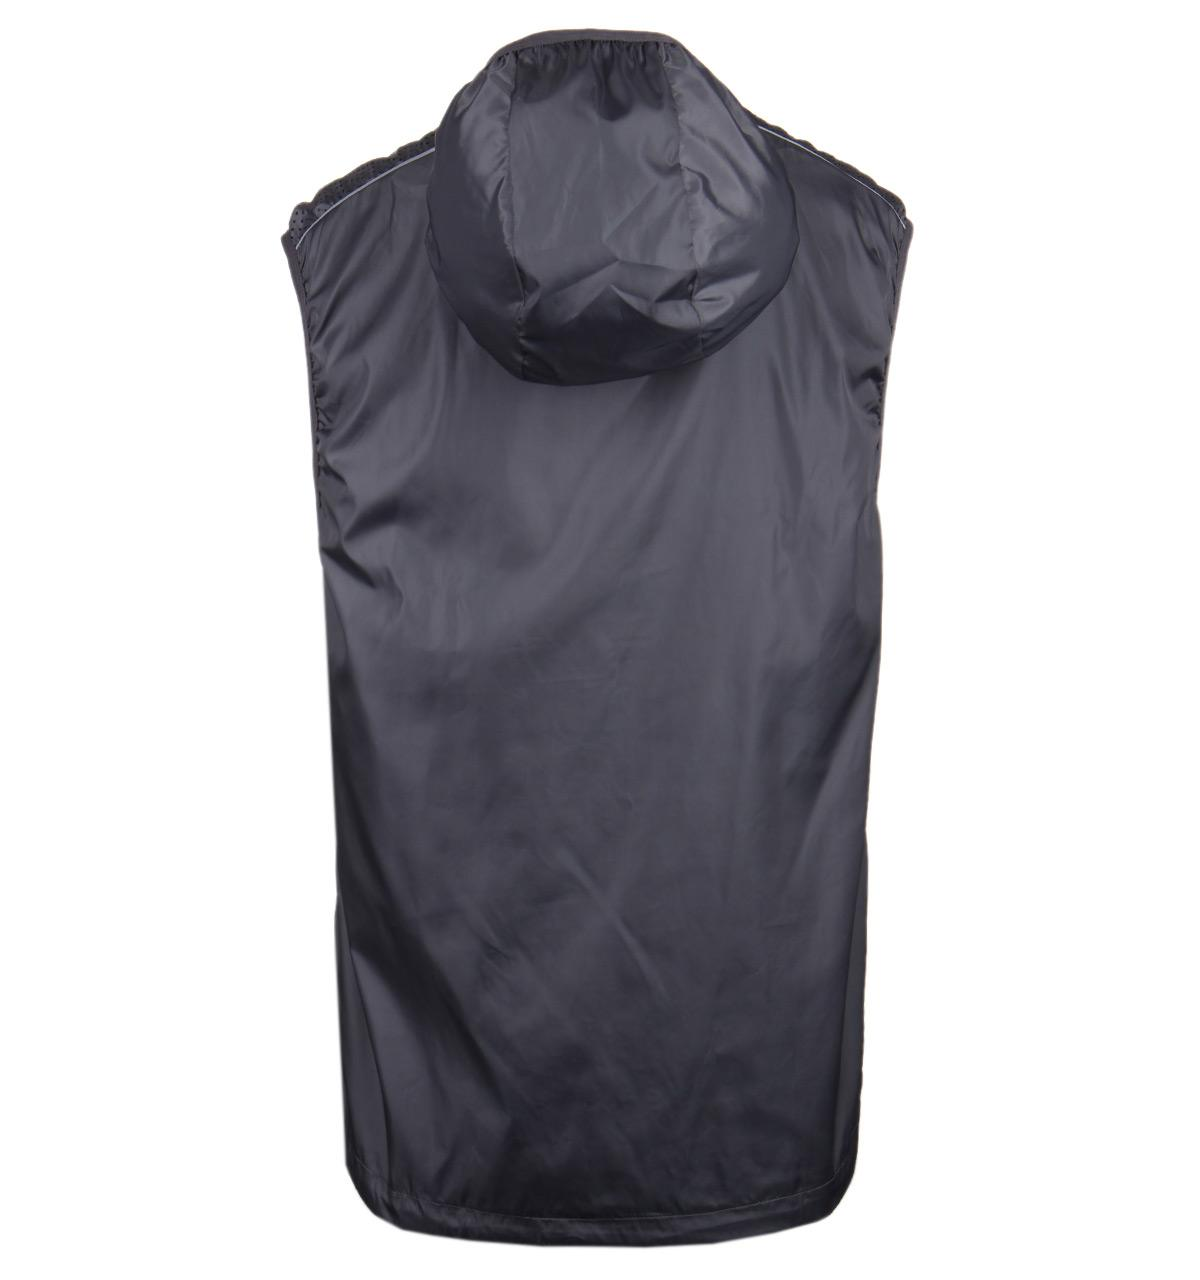 Cheap Order Discount Order Beach Vest with Hood - Grey BOSS Marketable For Sale Outlet With Credit Card Quality Free Shipping For Sale LJPjDh6